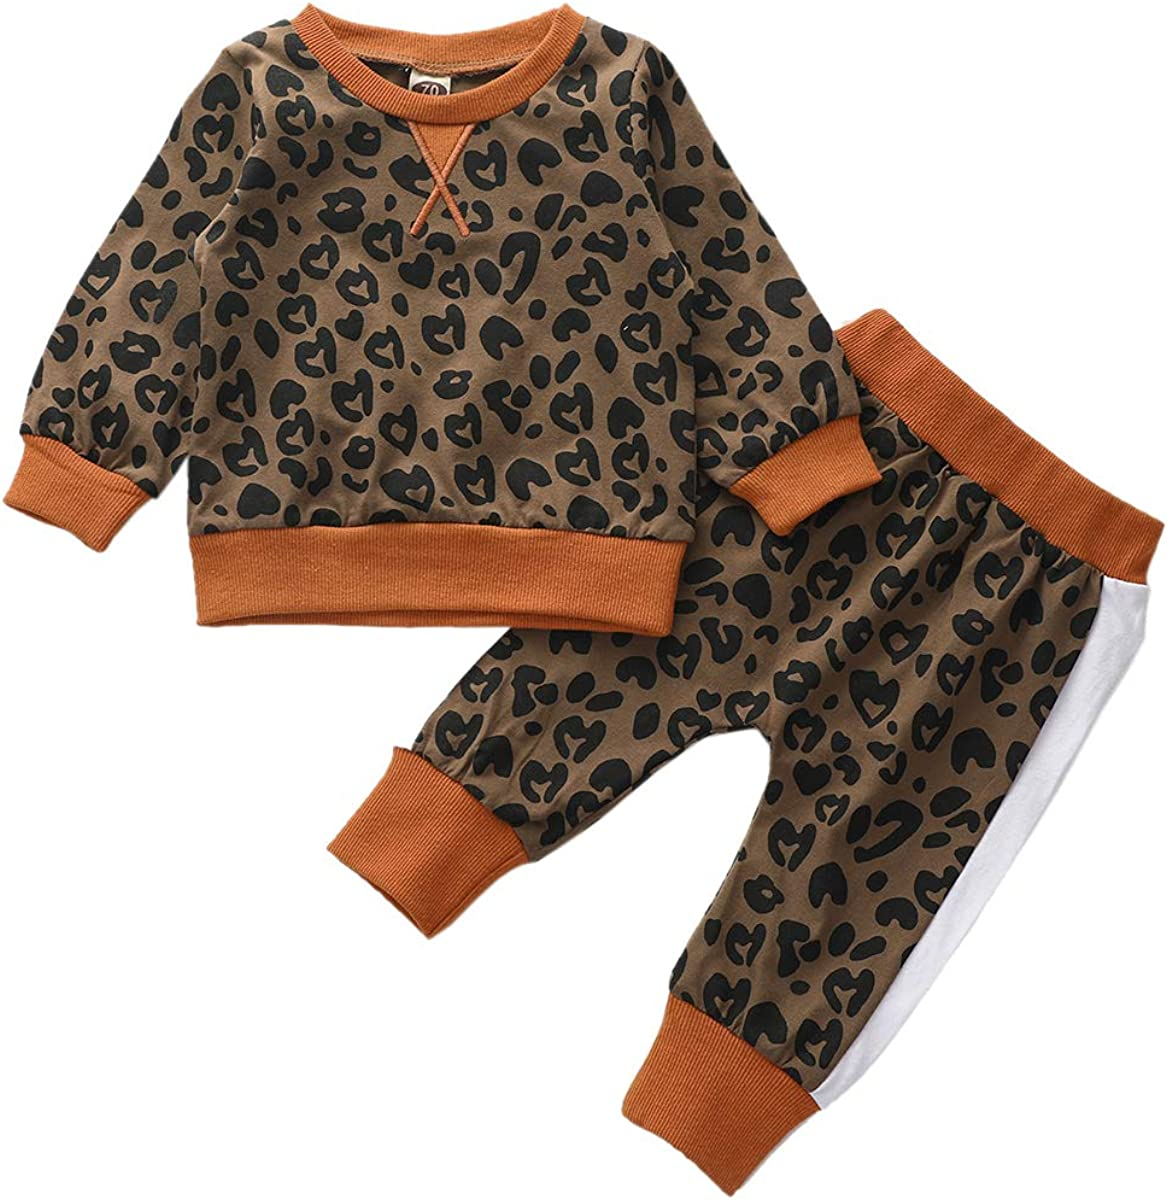 3PCS Toddler Baby Discount is also Opening large release sale underway Girl Boy Fall Long Lette Clothes Winter Sleeve